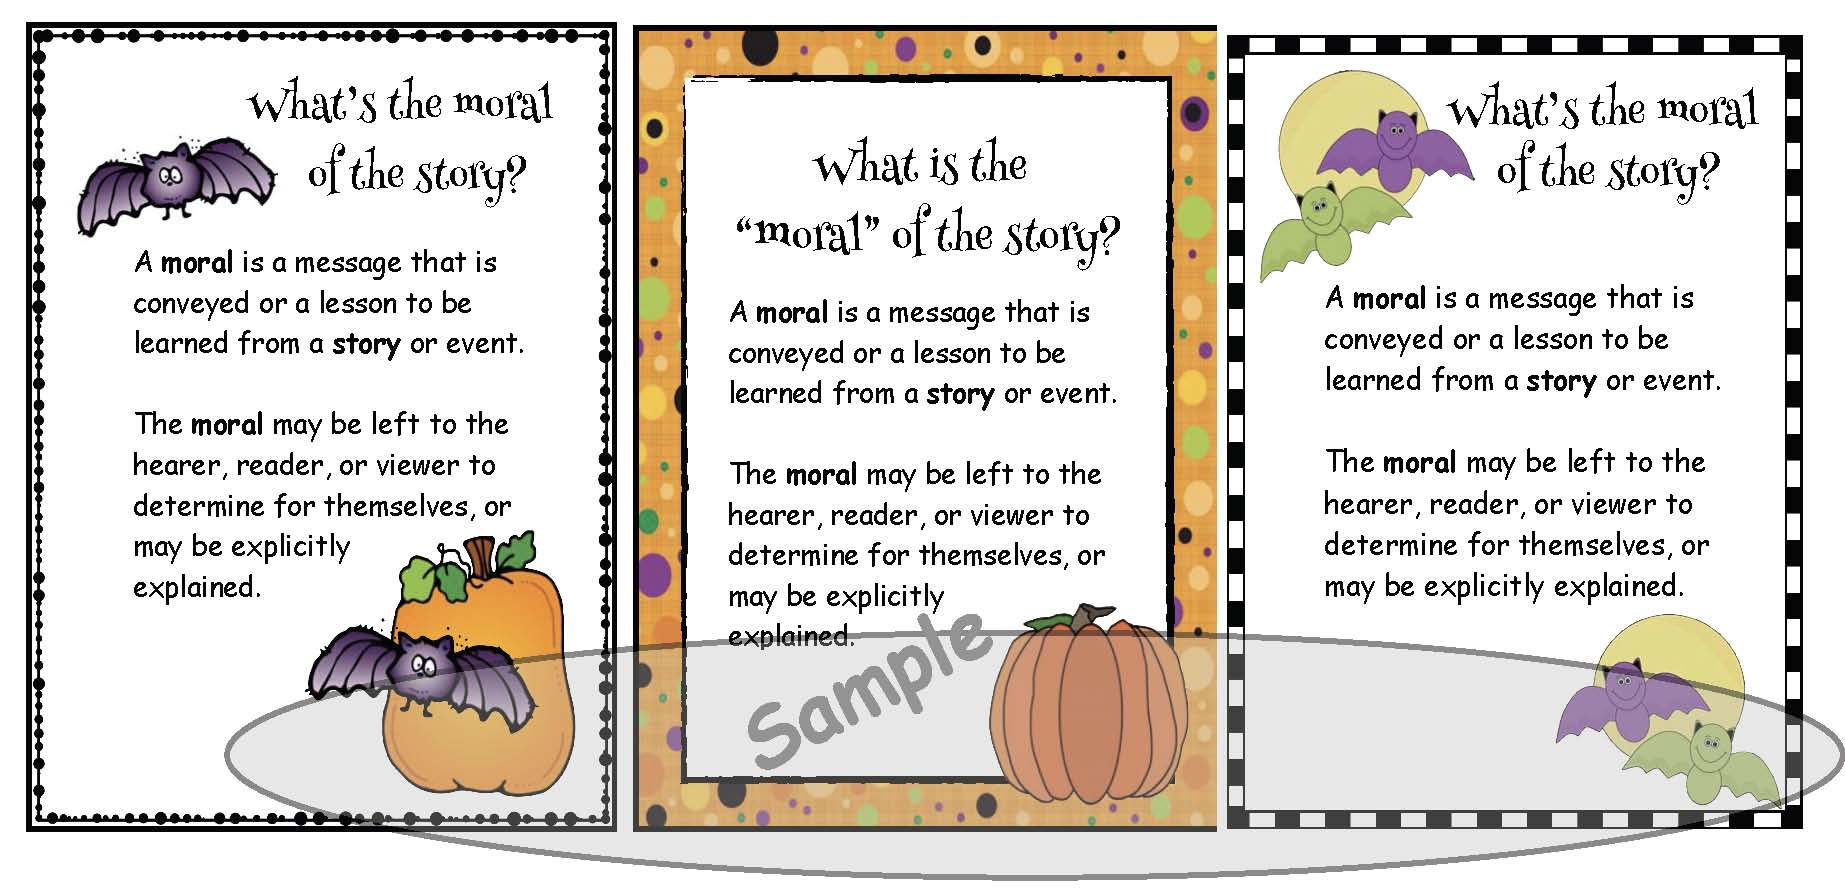 pumpkin crafts, halloween crafts, retelling a story activities, sequencing a story activities, moral of the story activities, moral of the story posters, activities to go with Big Pumpkin, Halloween party ideas,